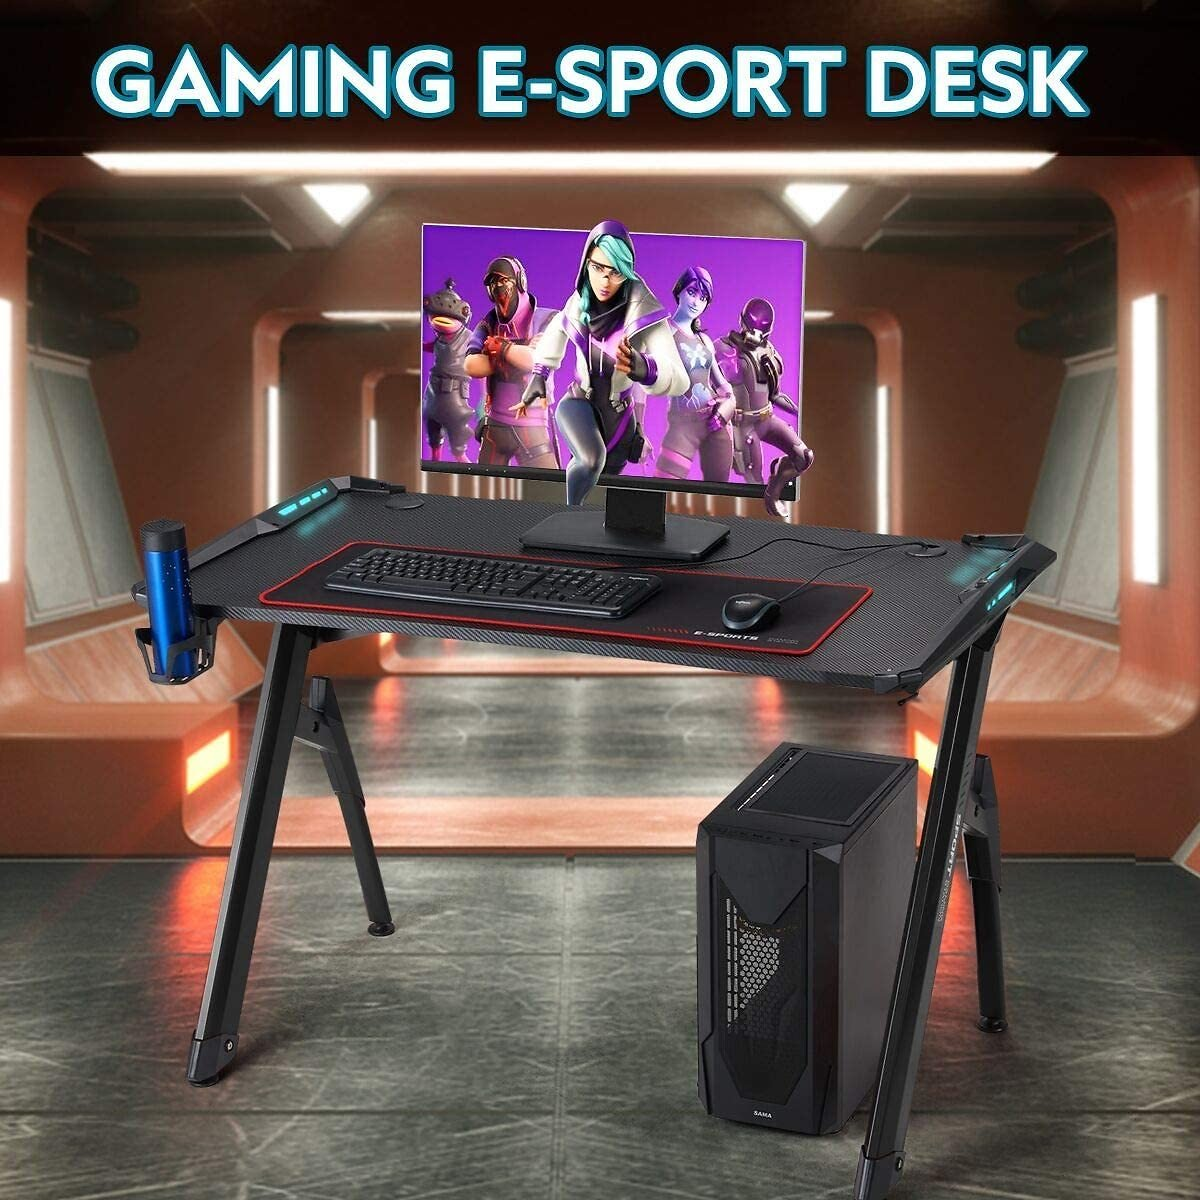 EROMMY 47inch Ergonomic Gaming Desk Home Office Desk RGB LED Light PC Computer Table with Cup Holder & Headphone Hook,Cabling Ma